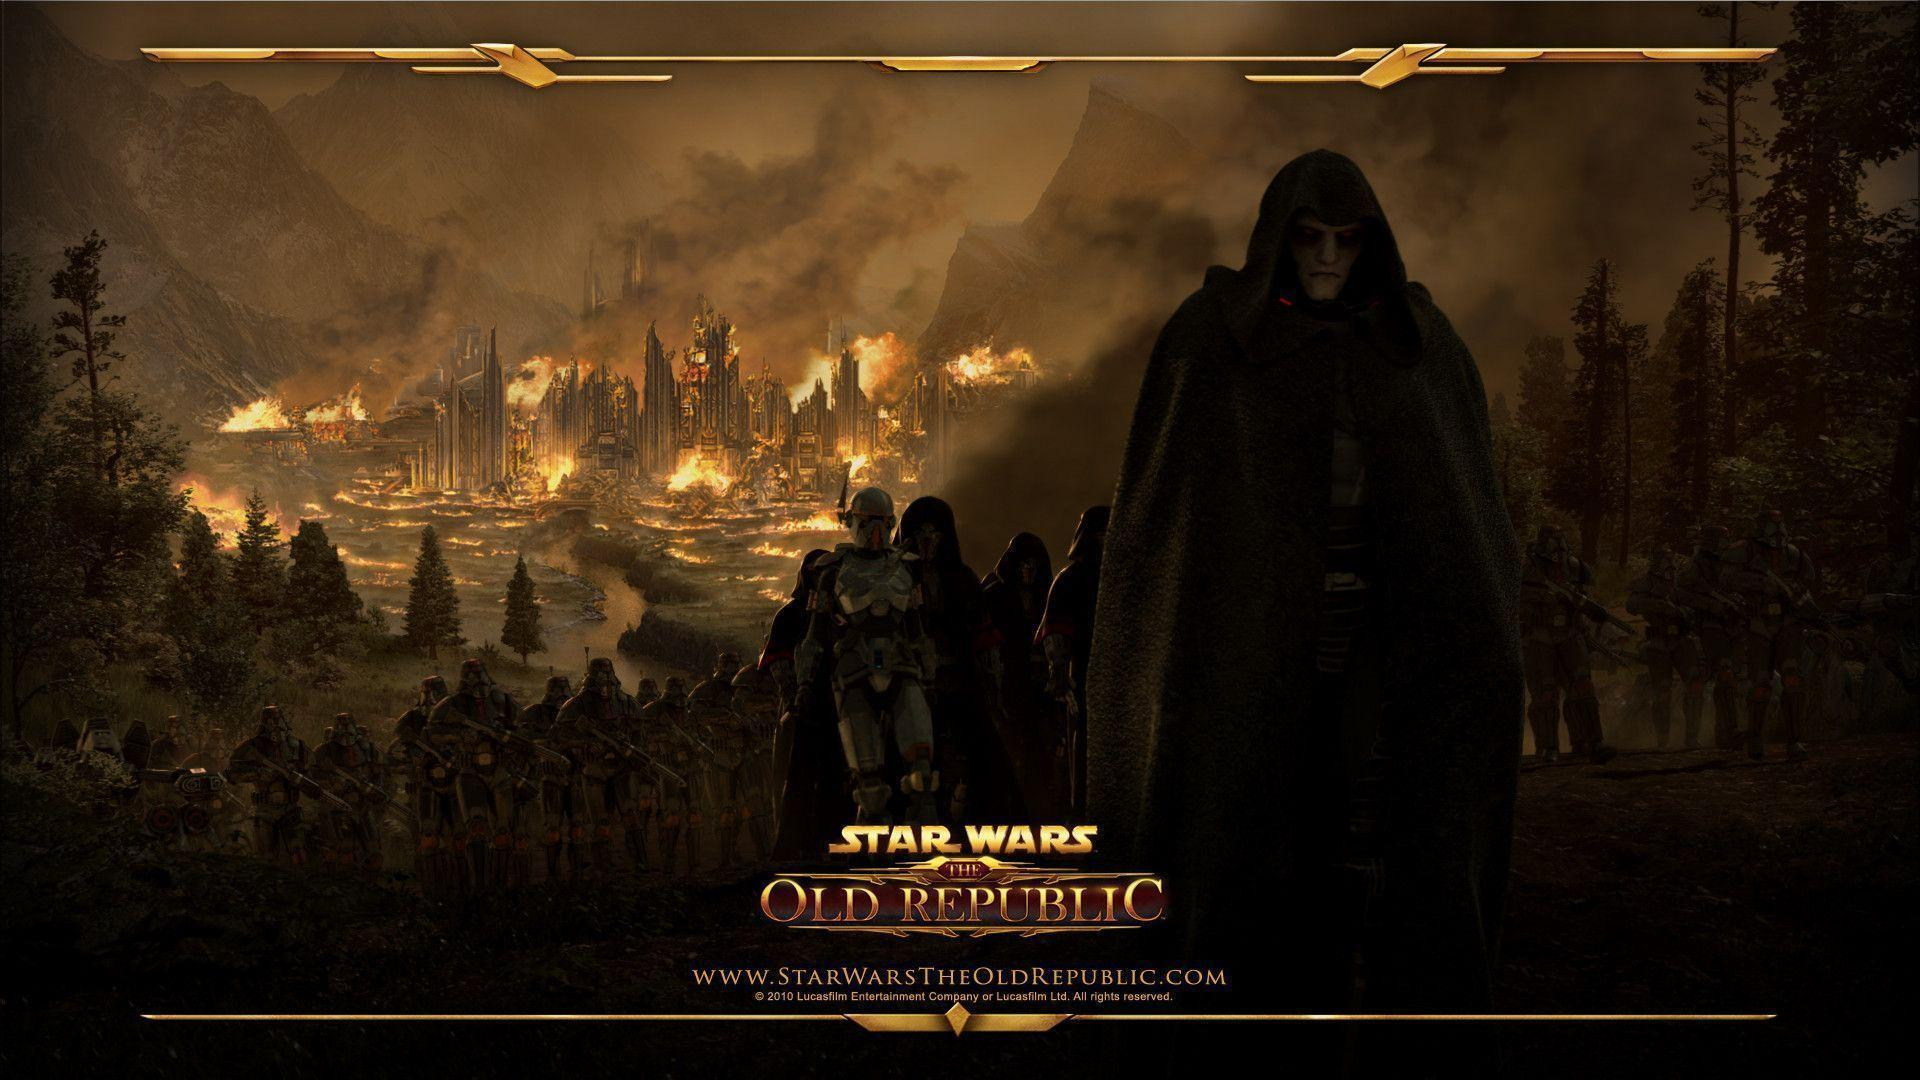 Star Wars The Old Republic Wallpapers 1920x1080 1920x1080